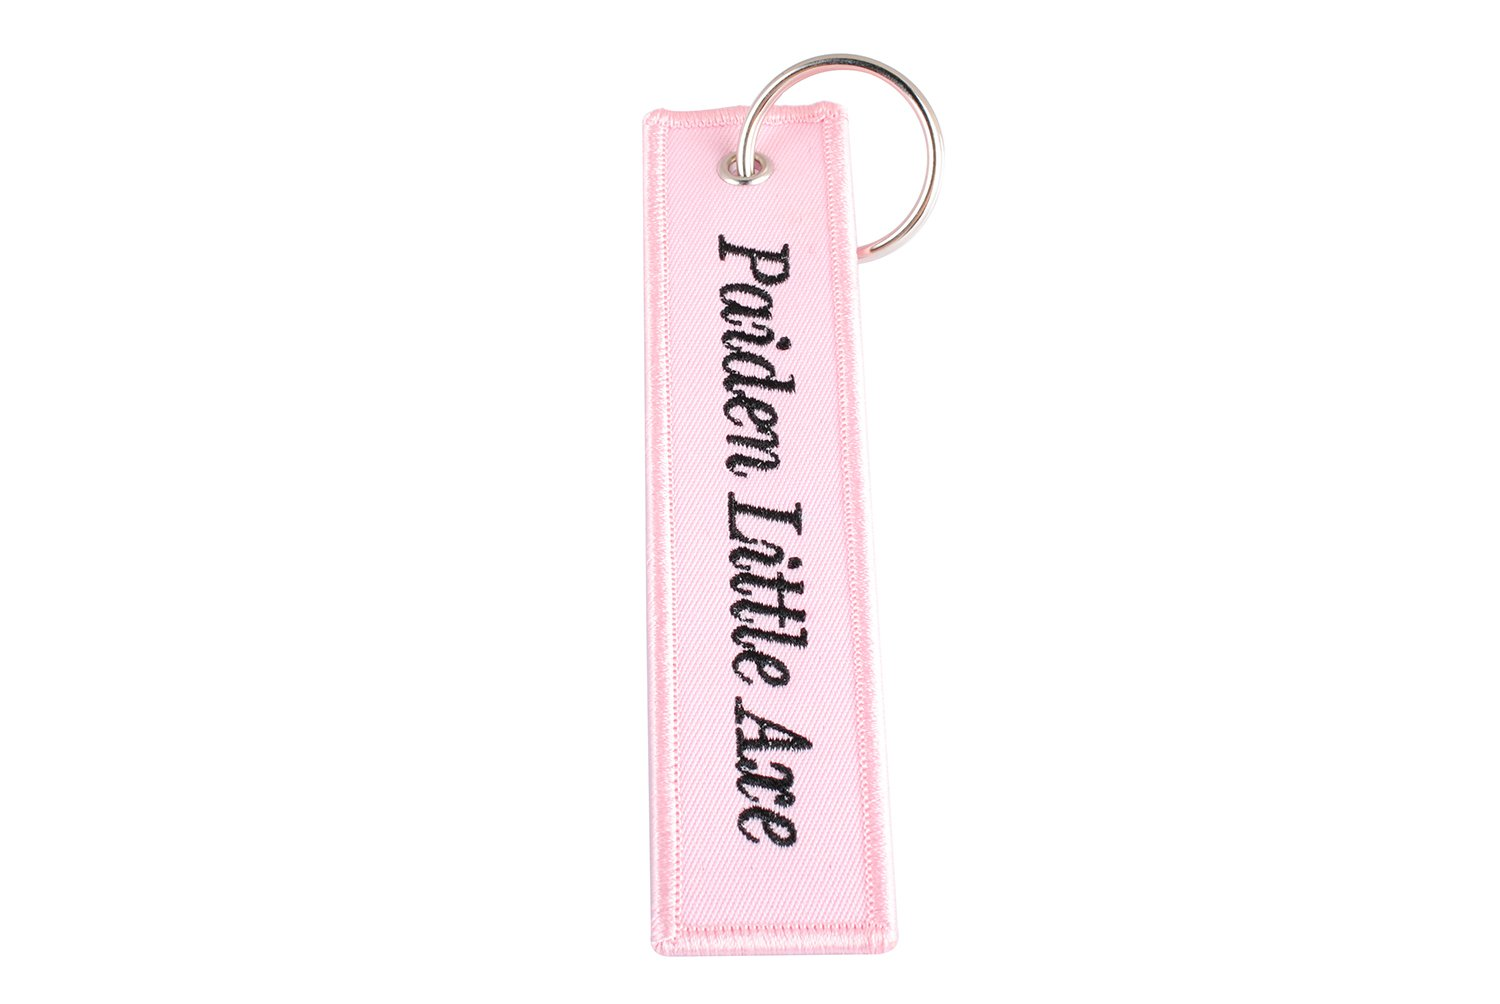 Amazon.com  Personalized Embroidered Key Tags Custom Keychain Linen Woven  Luggage Tag (Green)  Office Products e7174a265e